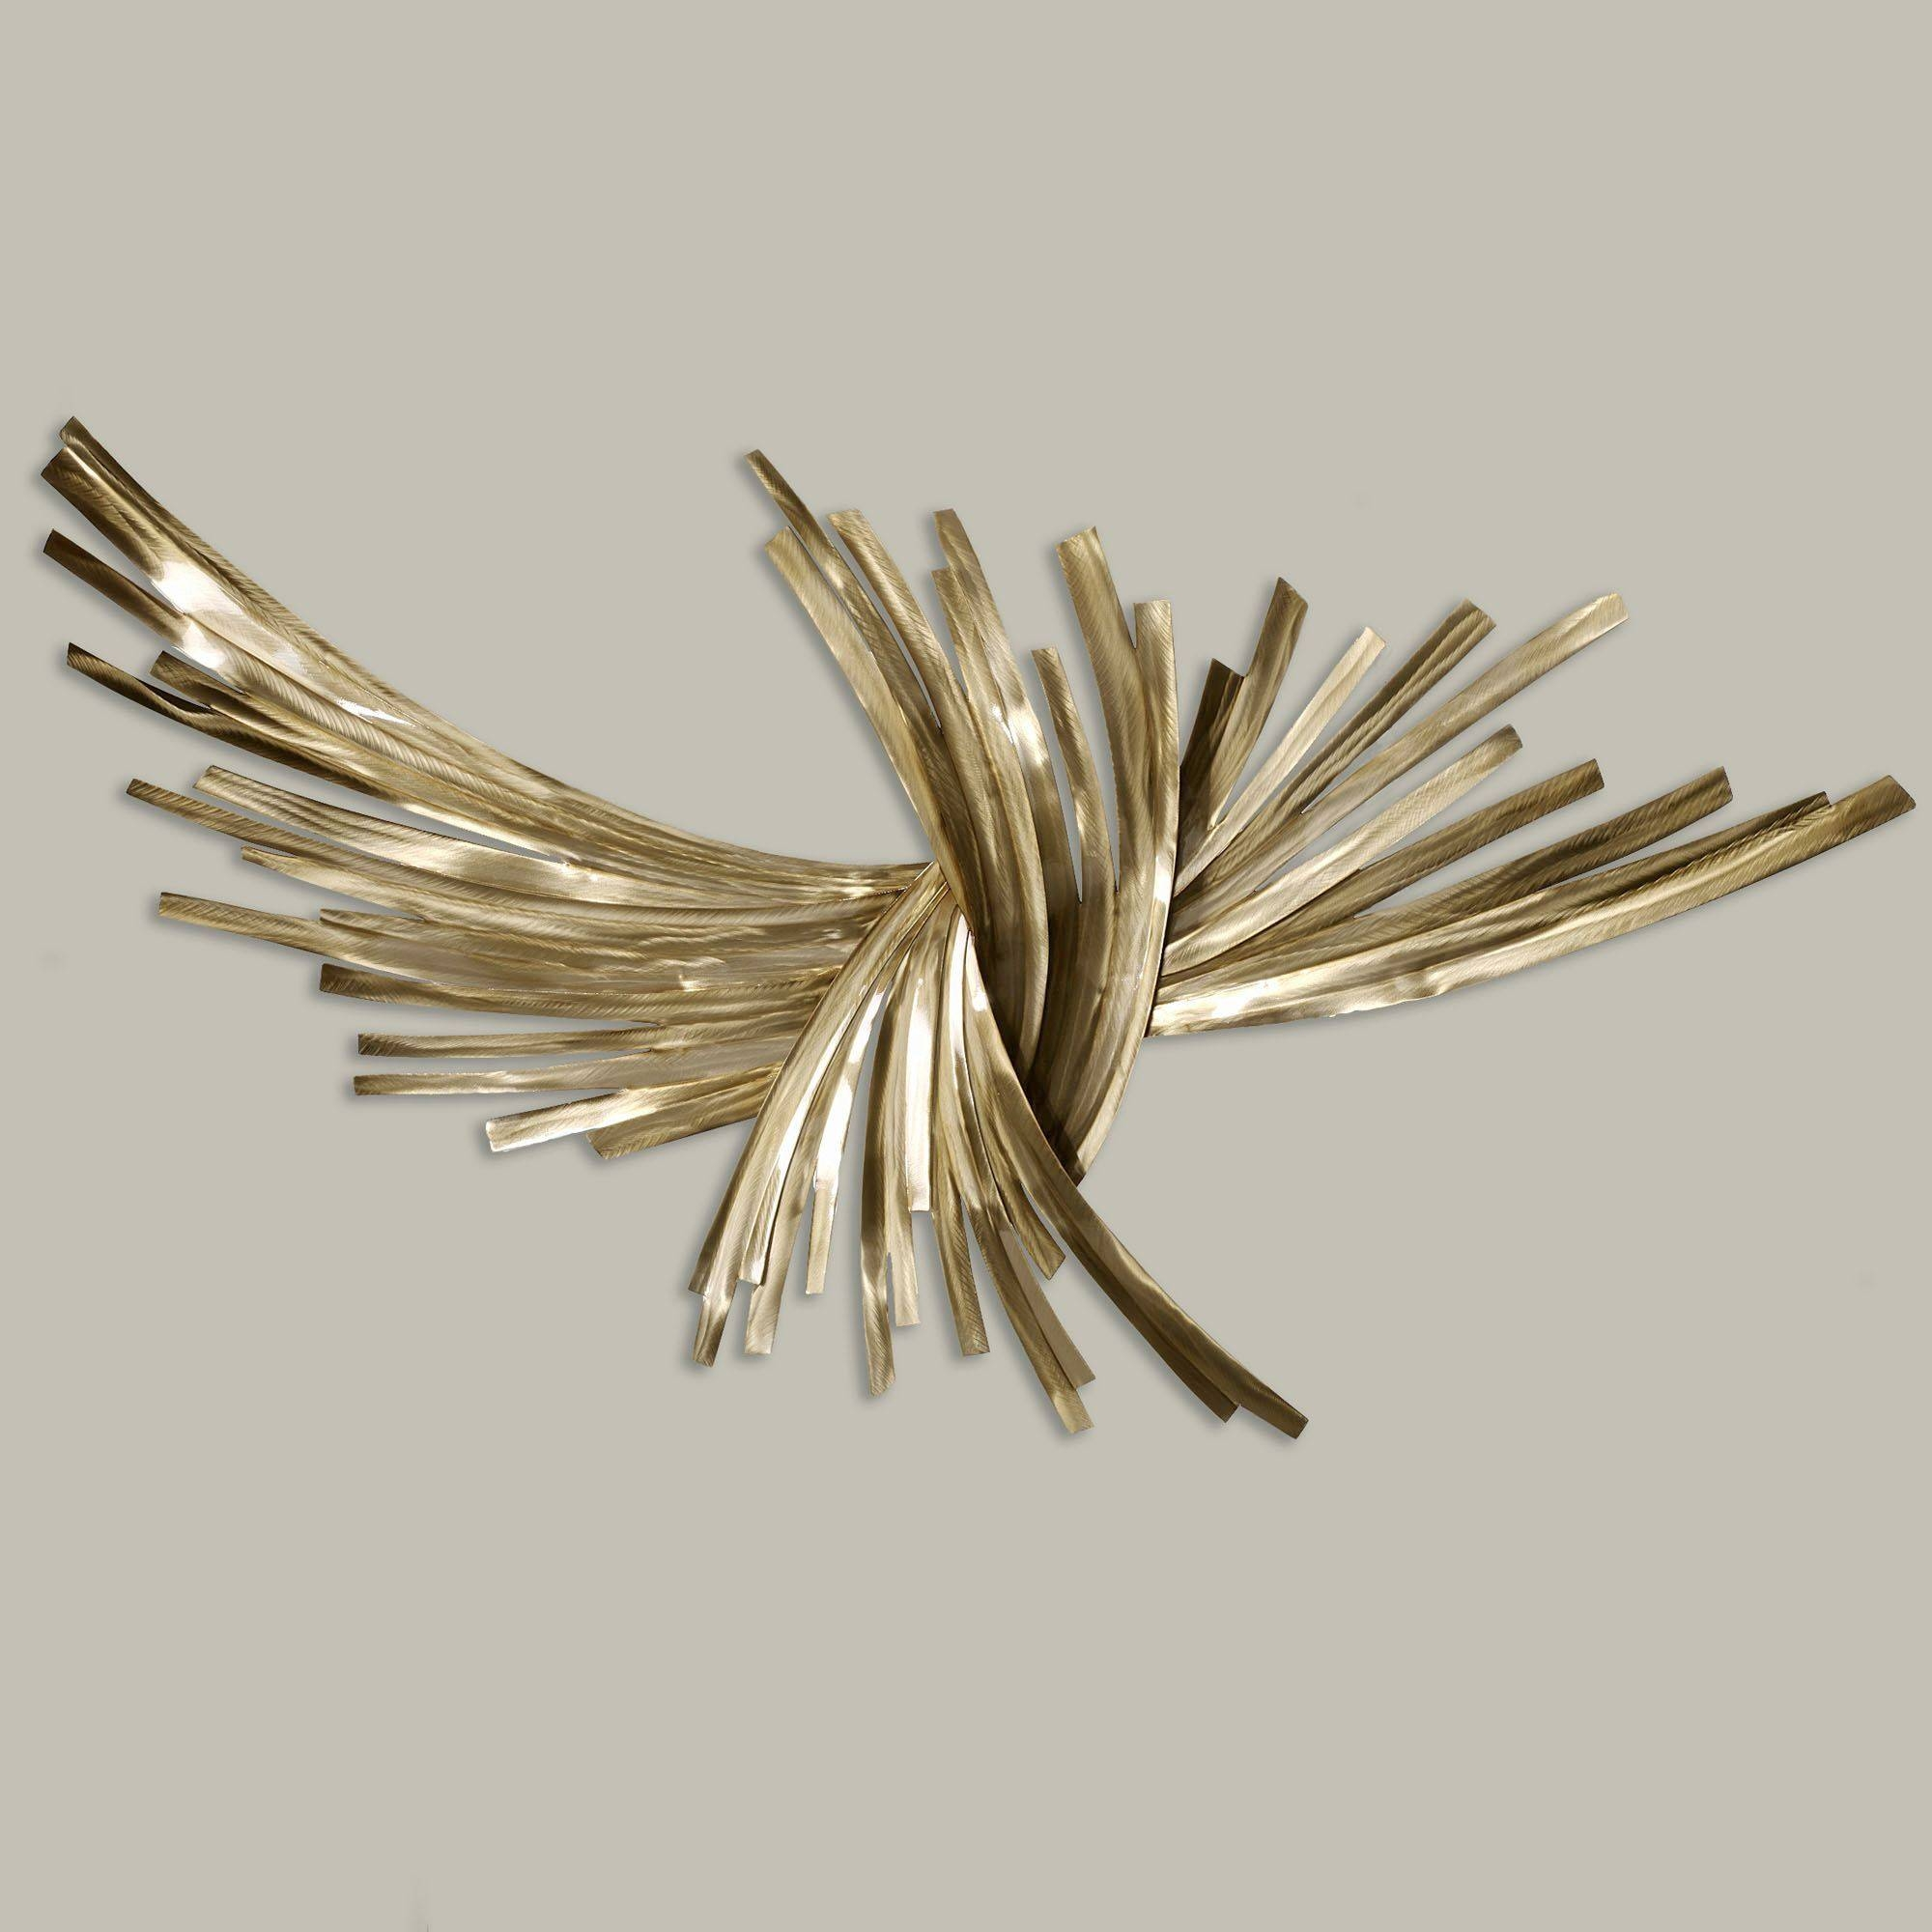 Contemporary Metal Wall Art Sculptures | Touch Of Class Pertaining To Most Recent Contemporary Metal Wall Art Sculptures (View 6 of 20)